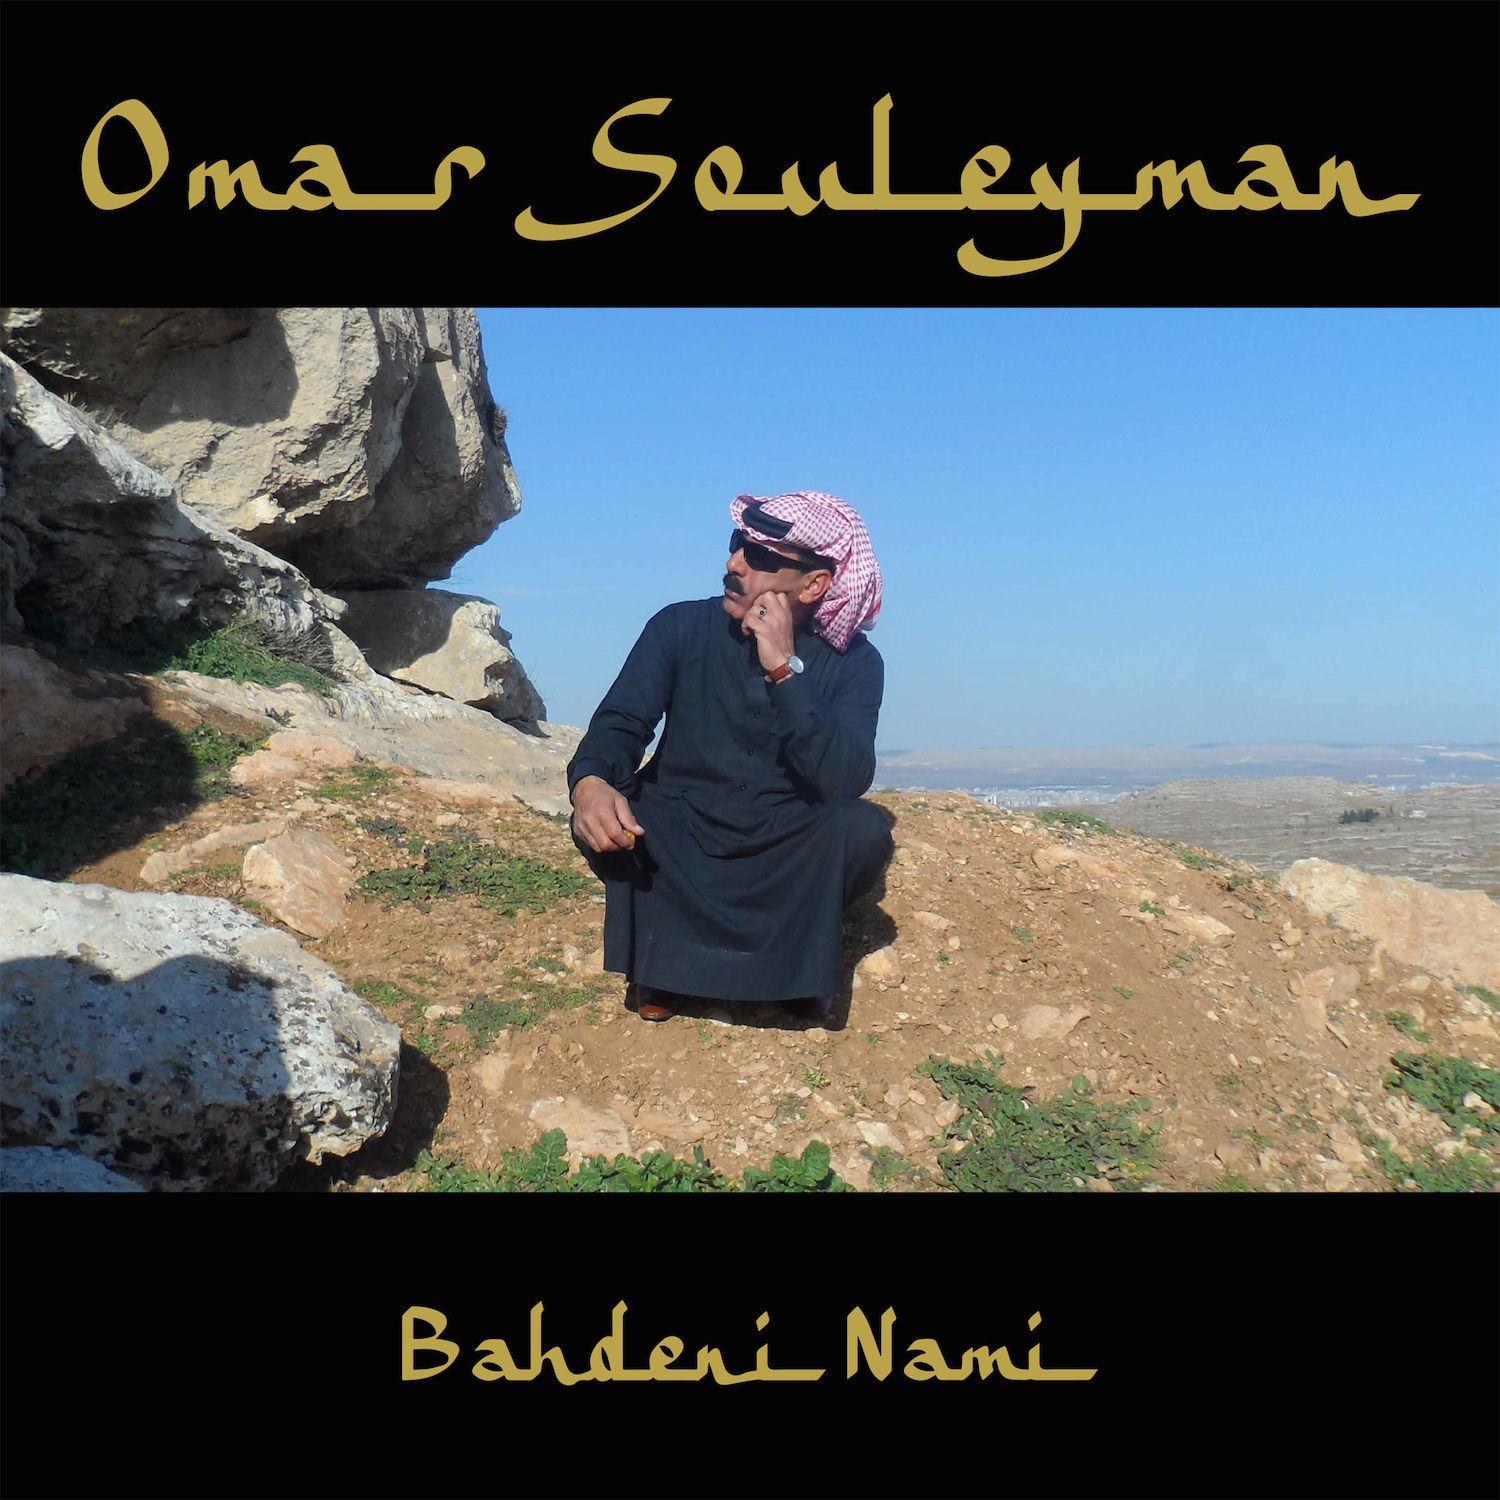 http://factmag-images.s3.amazonaws.com/wp-content/uploads/2015/03/omar-cover.jpg